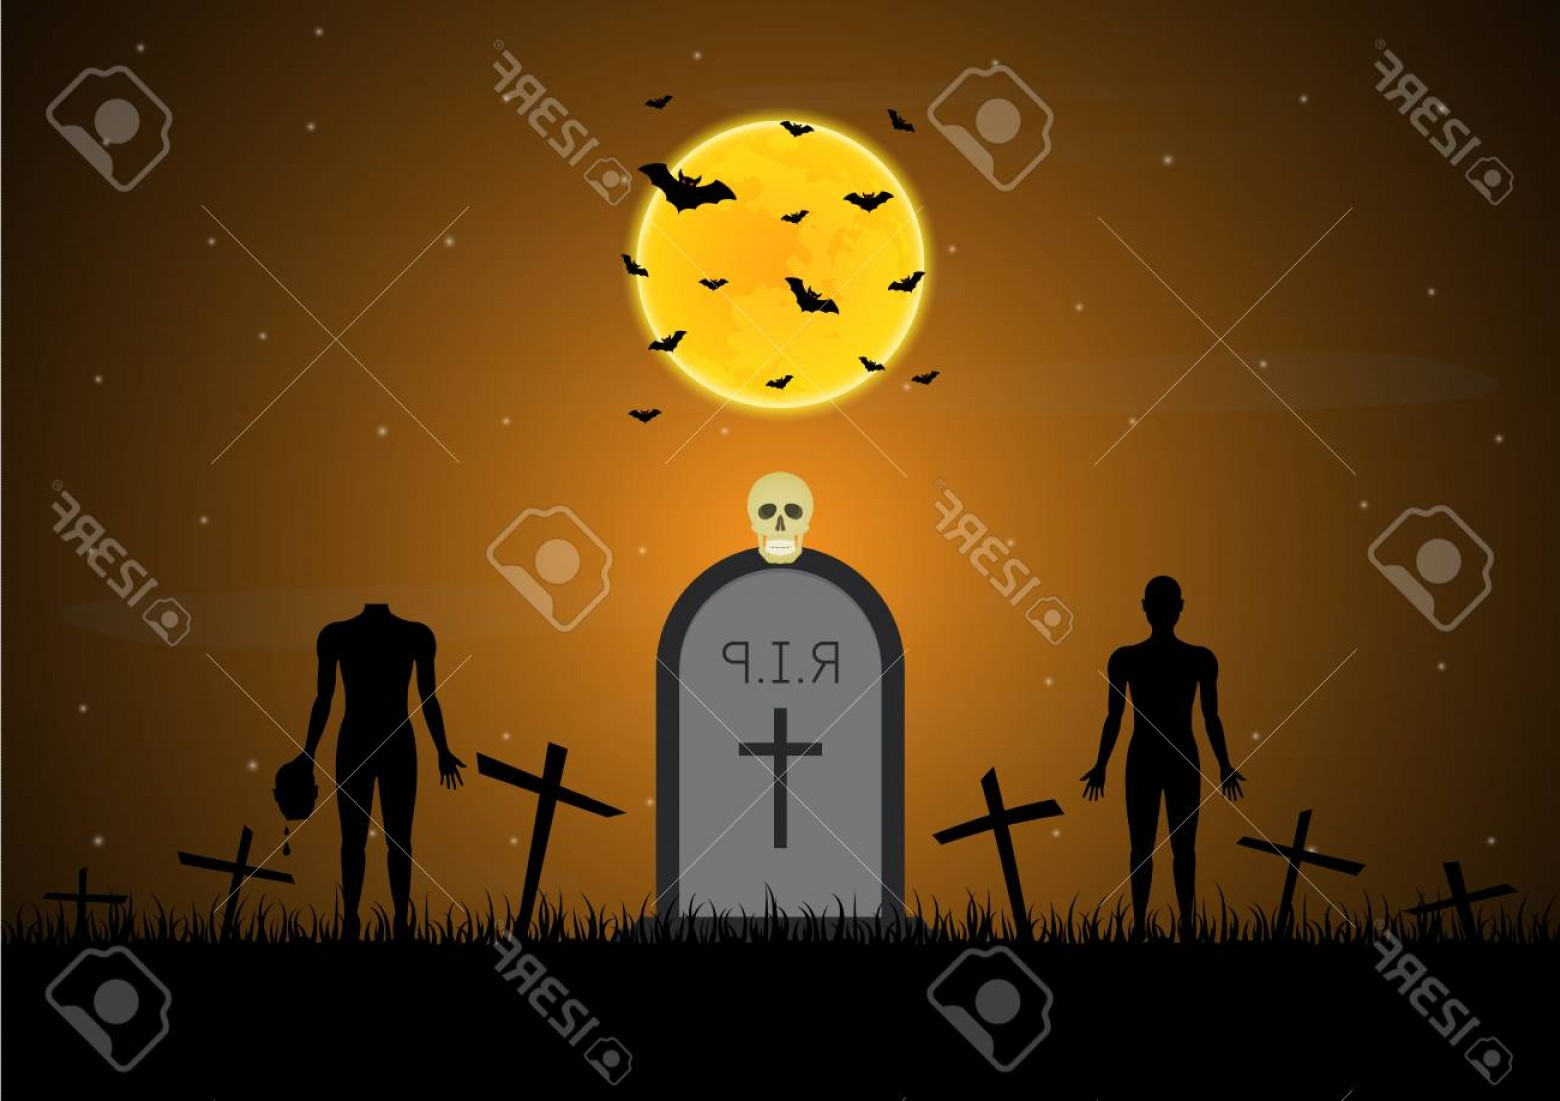 Headless Scary Halloween Skeletons Vectors: Photostock Vector Halloween Festival And Celebration Abstract Background Gravestone Or Tombstone Or Headstone With Gra